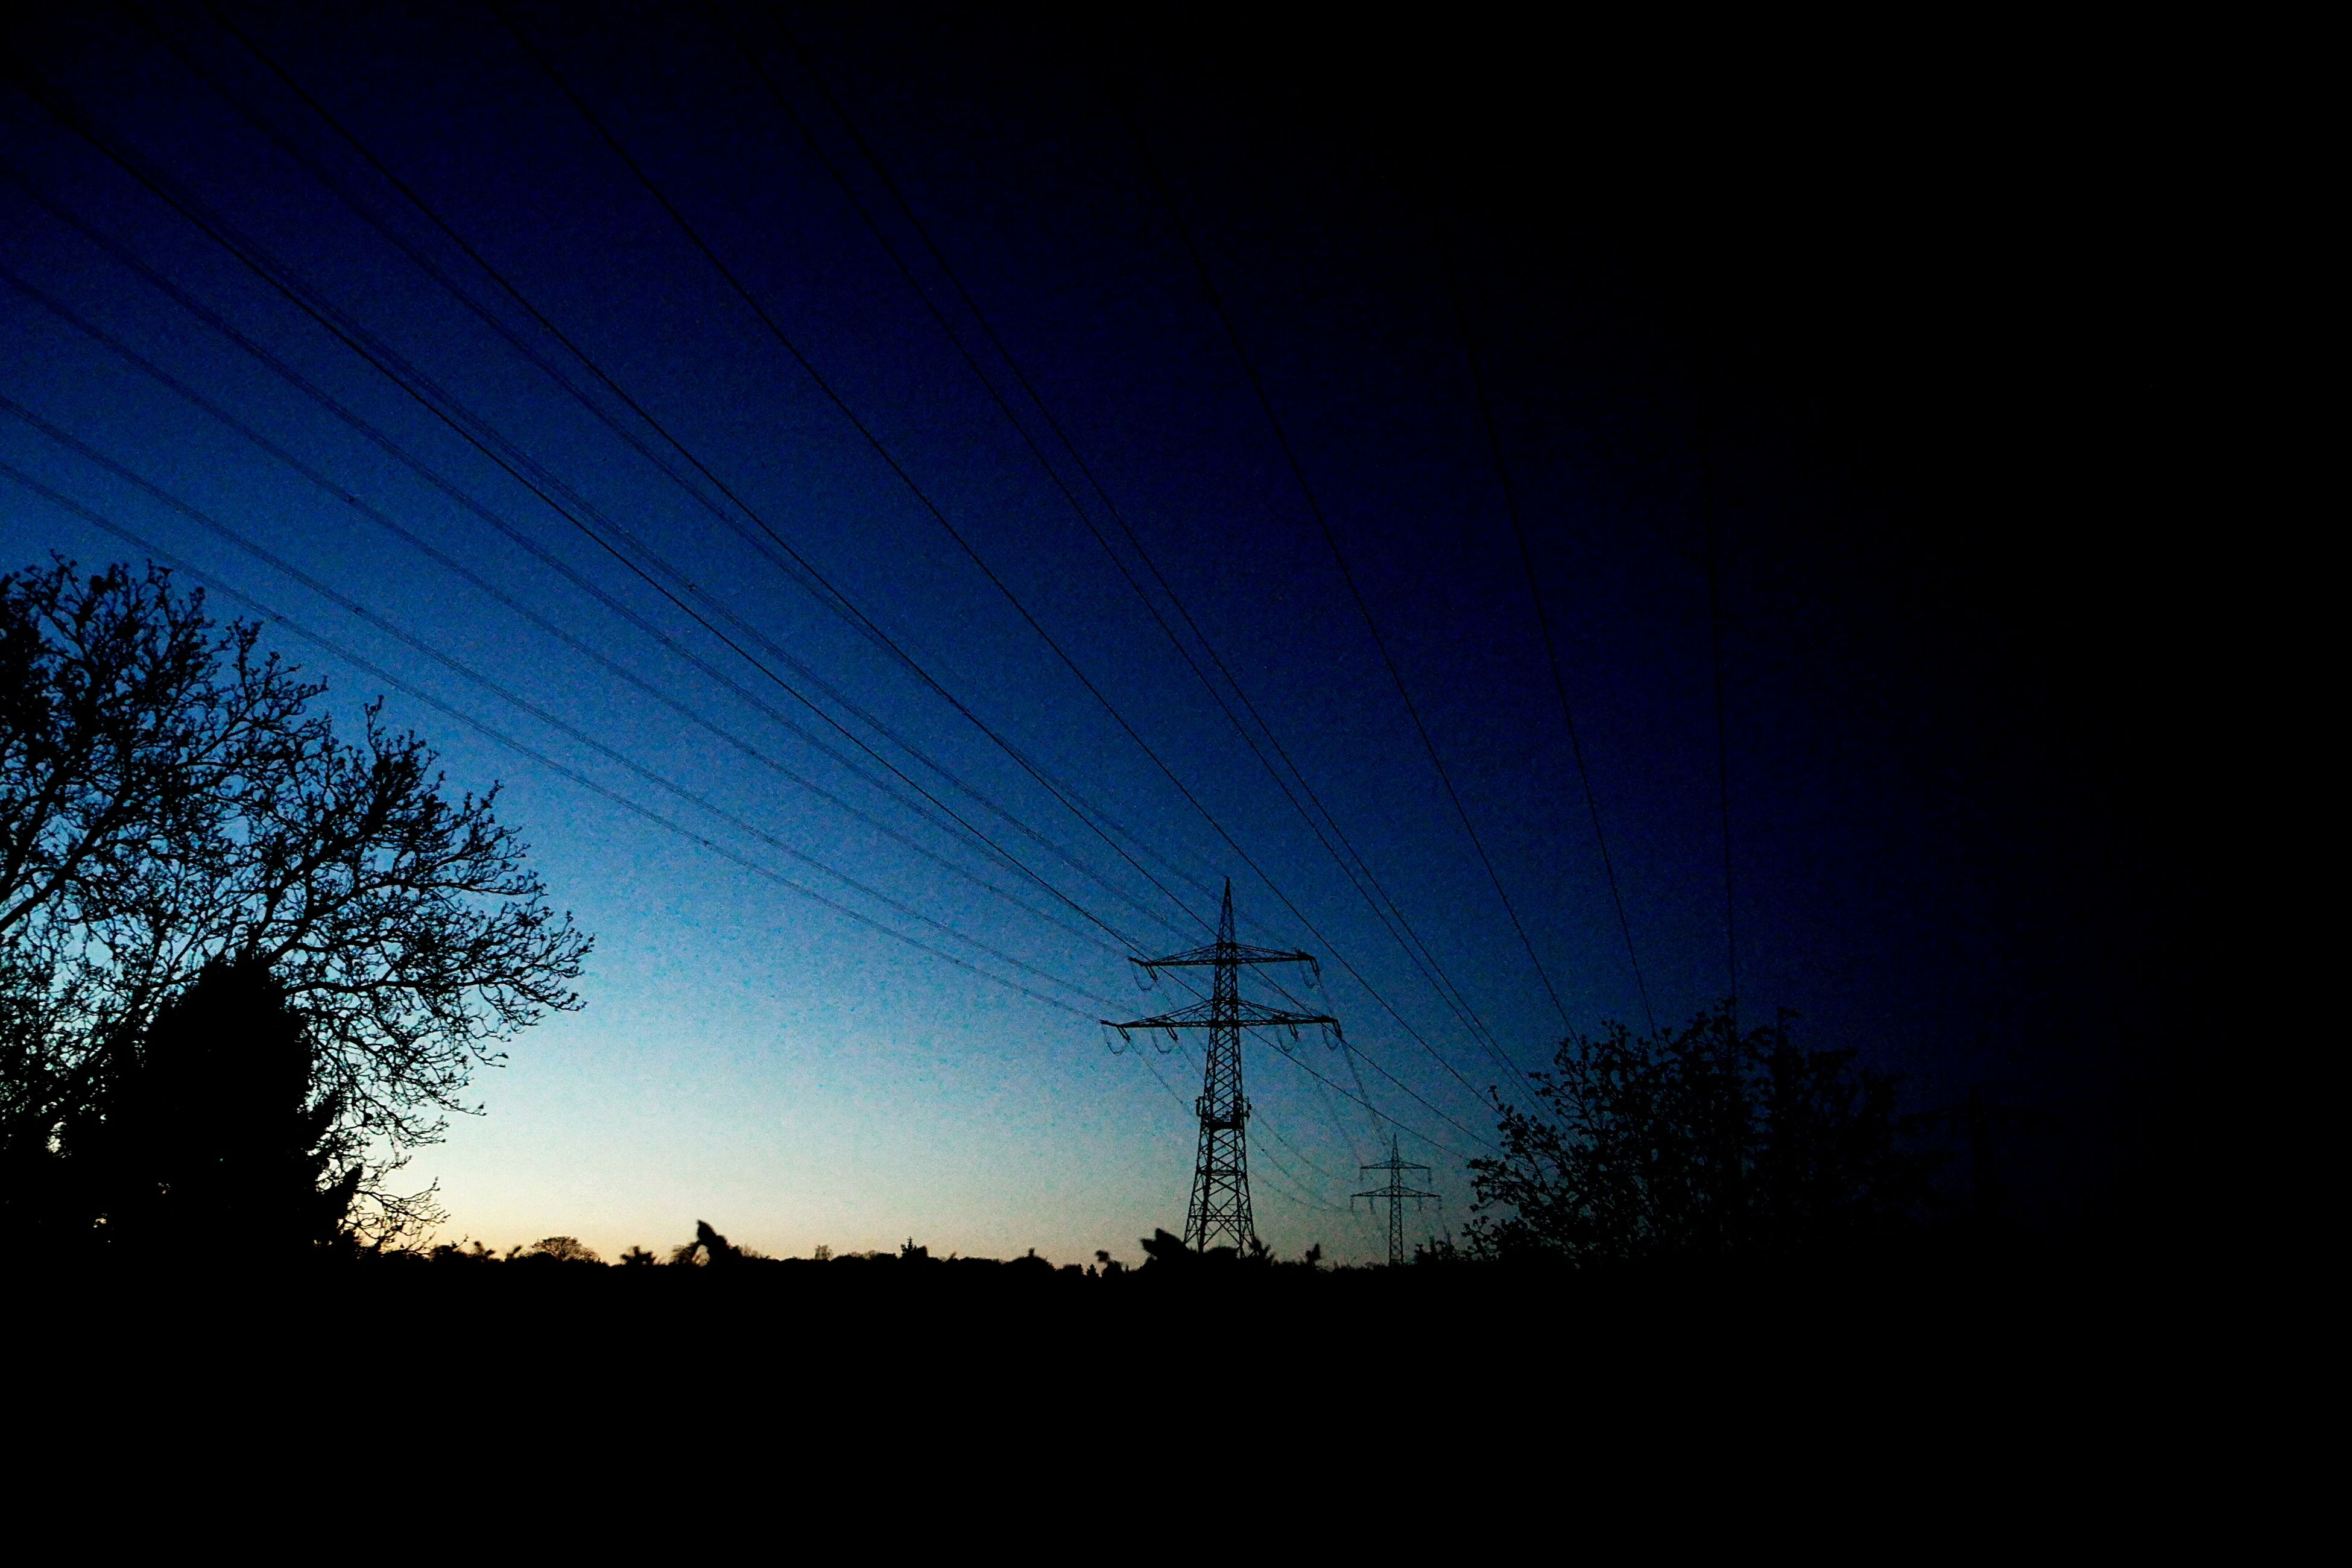 silhouette, power line, electricity pylon, electricity, power supply, low angle view, tranquility, tranquil scene, fuel and power generation, scenics, sunset, sky, beauty in nature, nature, tree, technology, dusk, landscape, clear sky, dark